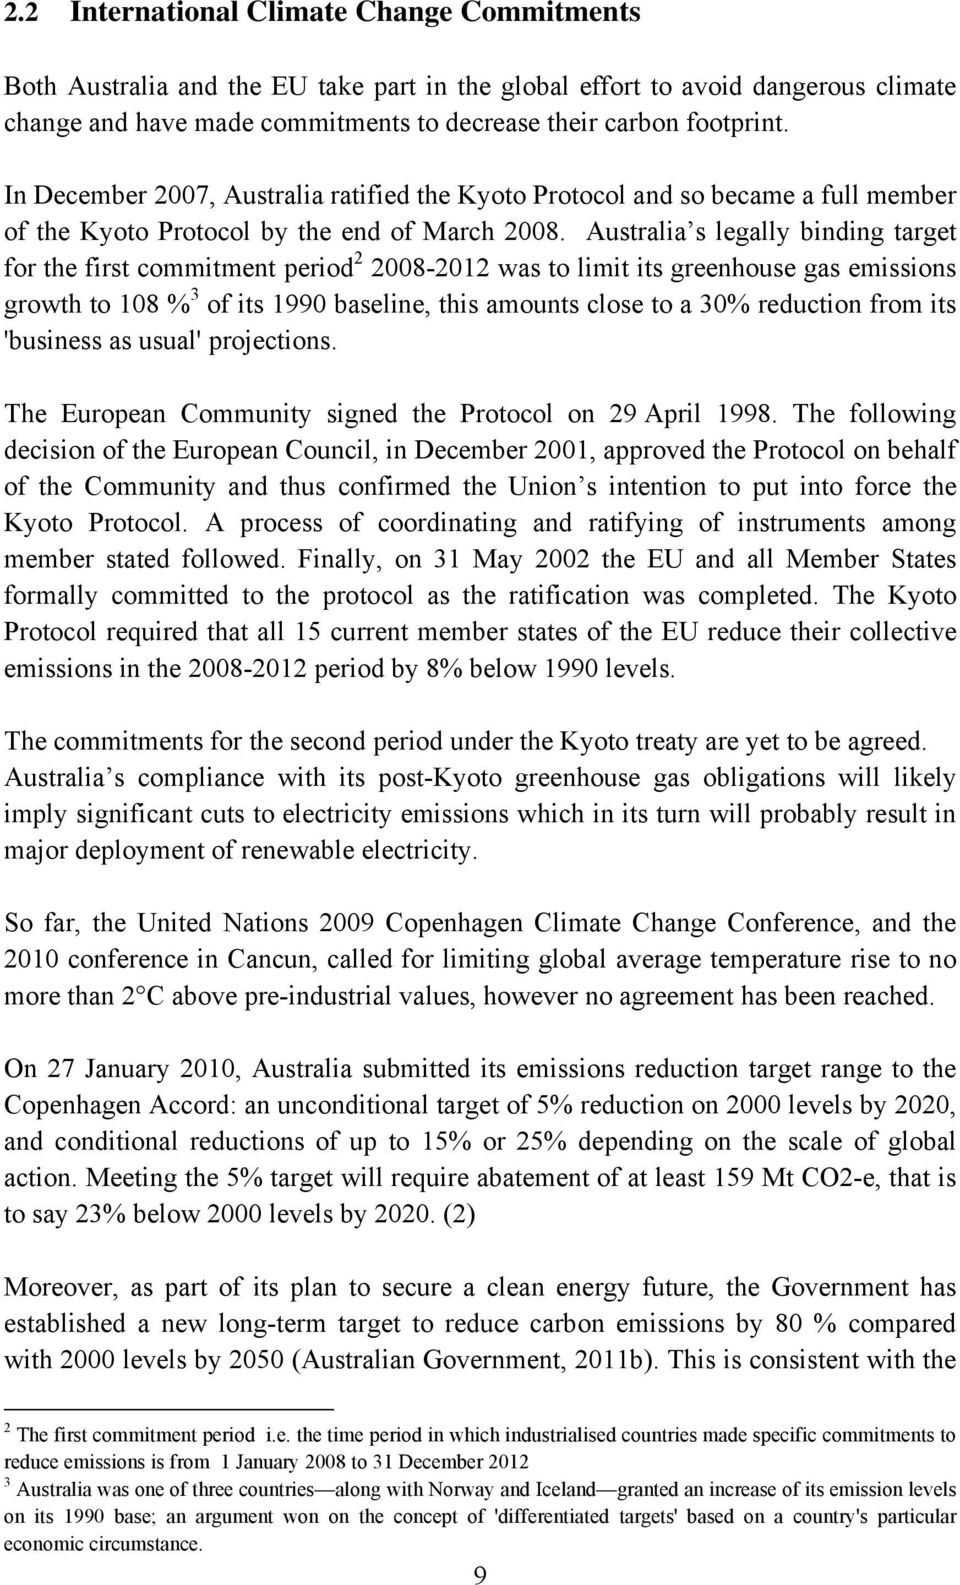 Australia s legally binding target for the first commitment period 2 2008-2012 was to limit its greenhouse gas emissions growth to 108 % 3 of its 1990 baseline, this amounts close to a 30% reduction